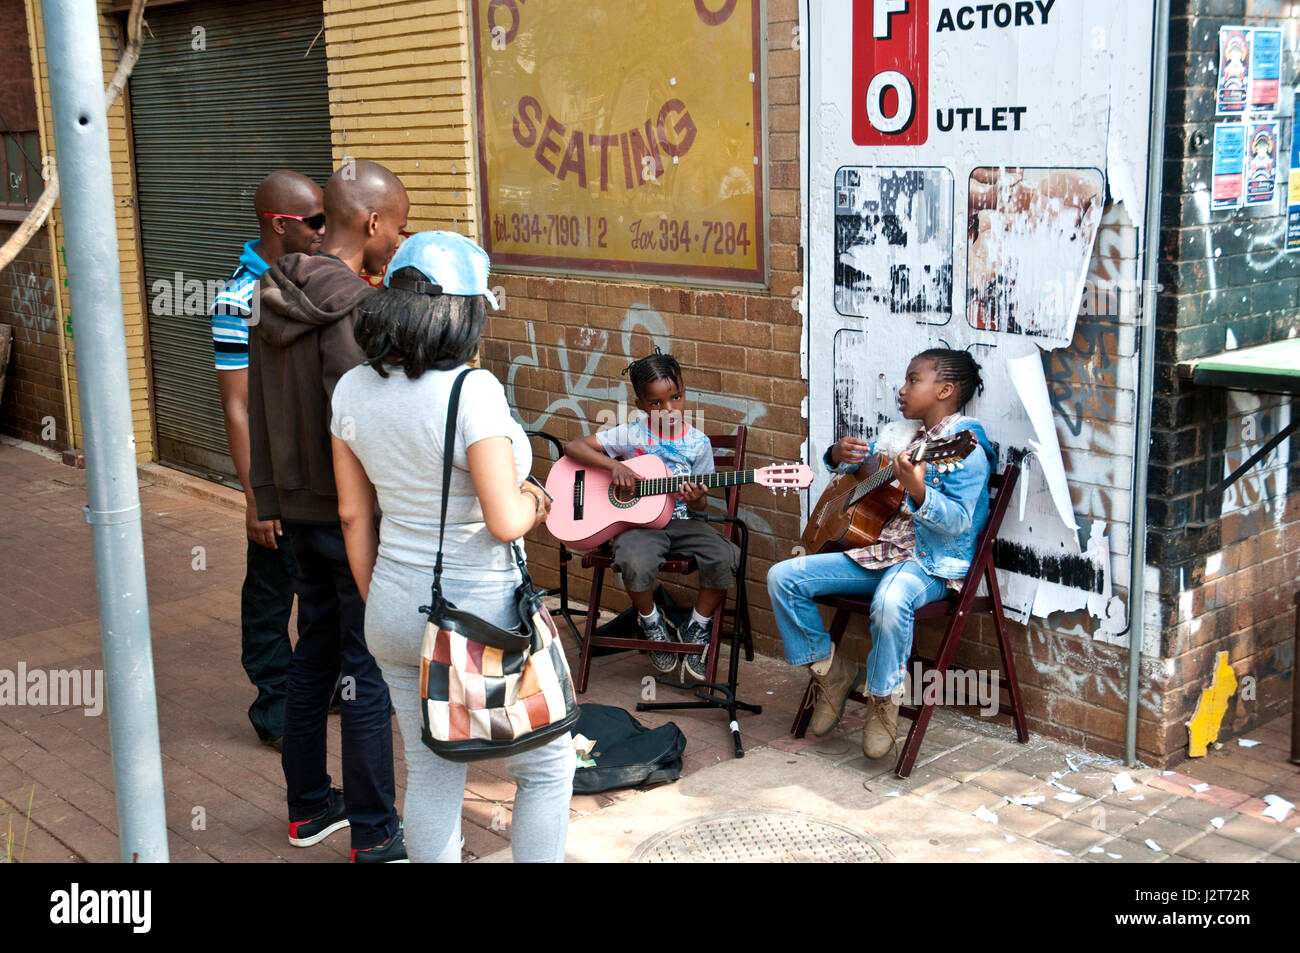 Trendy Maboneng District in downtowm Johannesburg Central Business District Gauteng Province South Africa - Stock Image